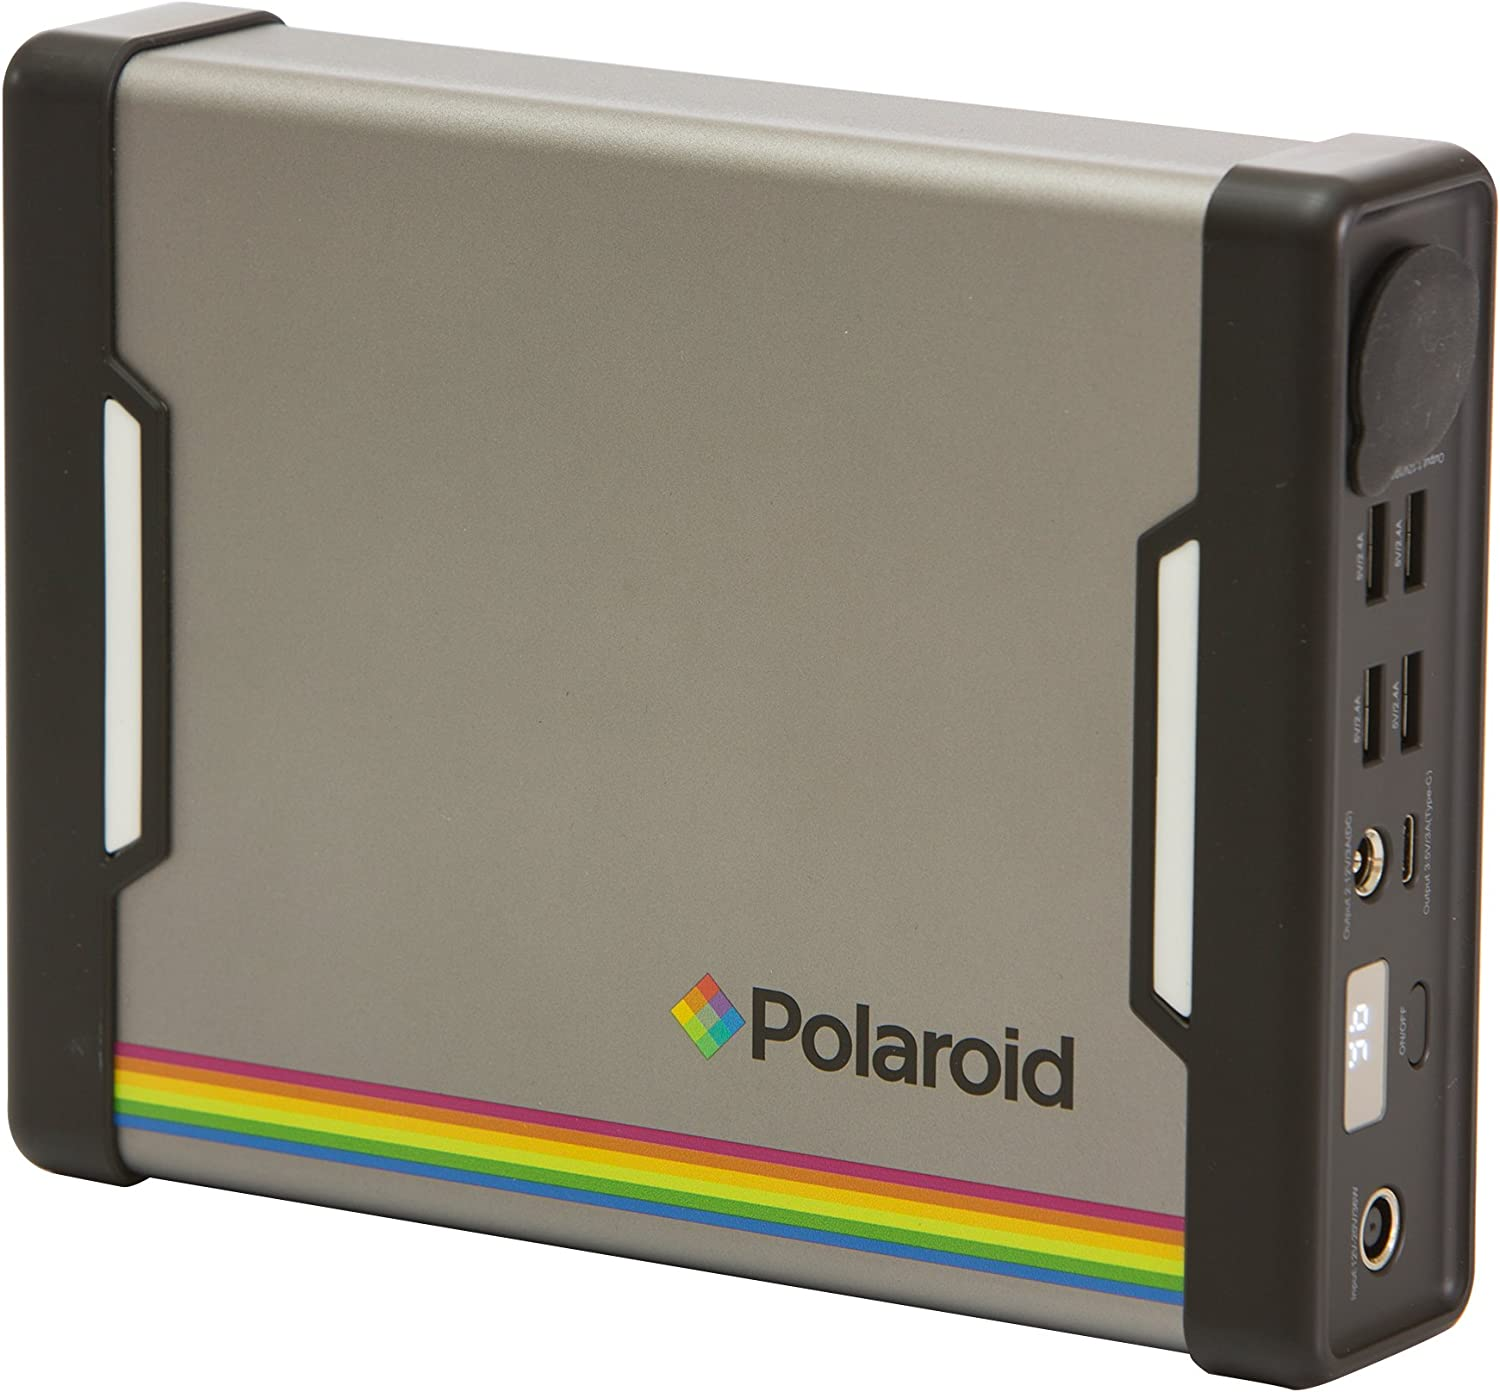 Silver//Grey Polaroid PS100 84 Wh Portable Power Supply//Mains Battery//Power Bank High Capacity Energy Storage System With UK Plug